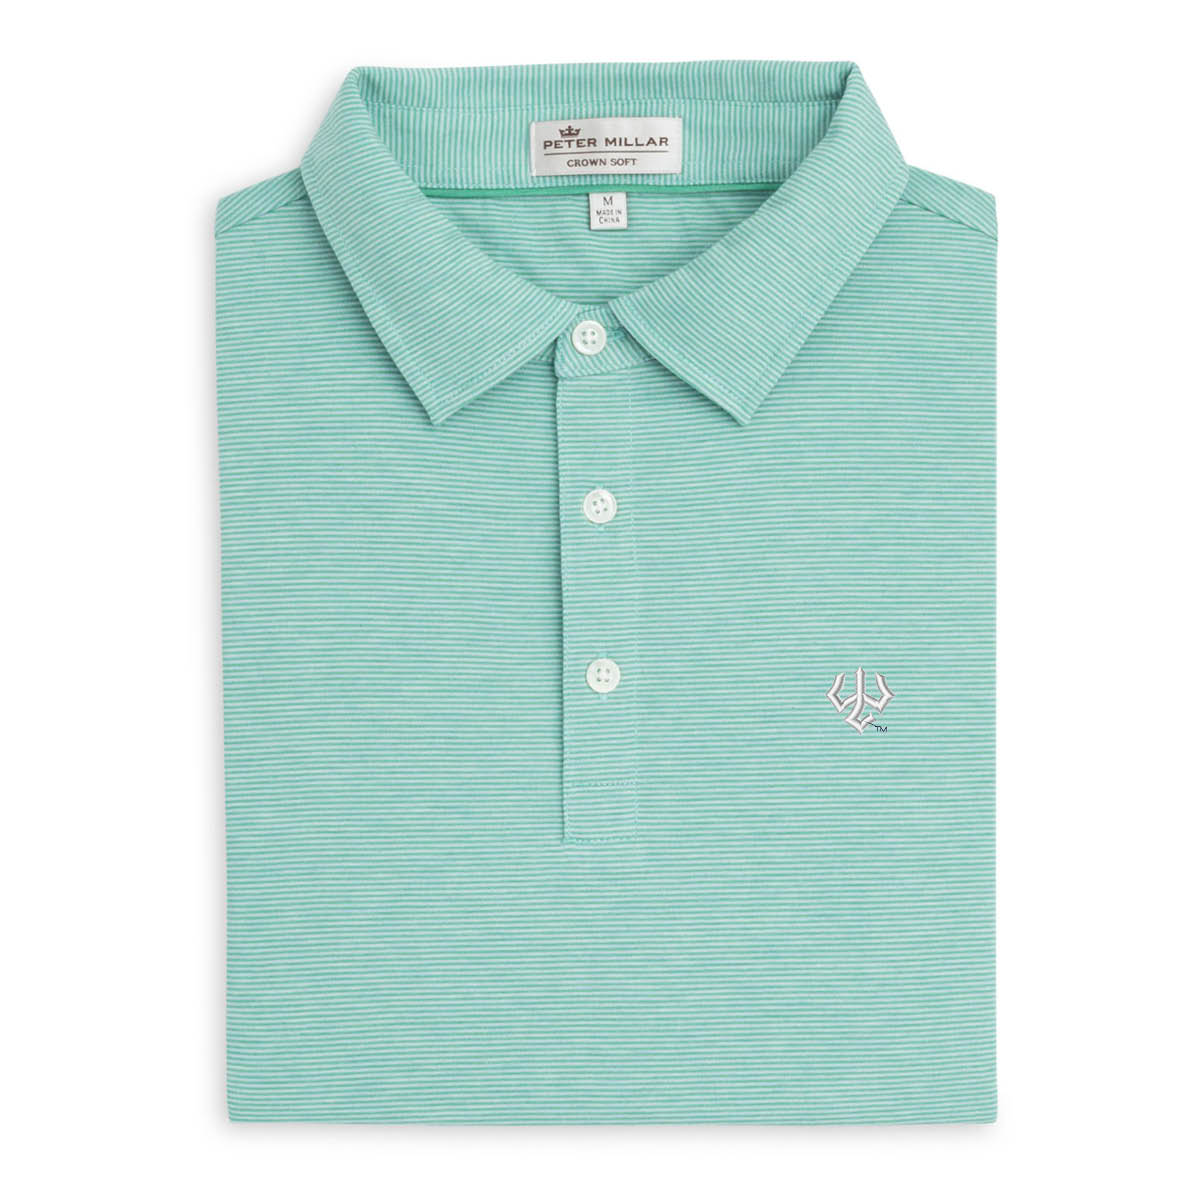 Peter Millar Crown Soft Stripe Polo